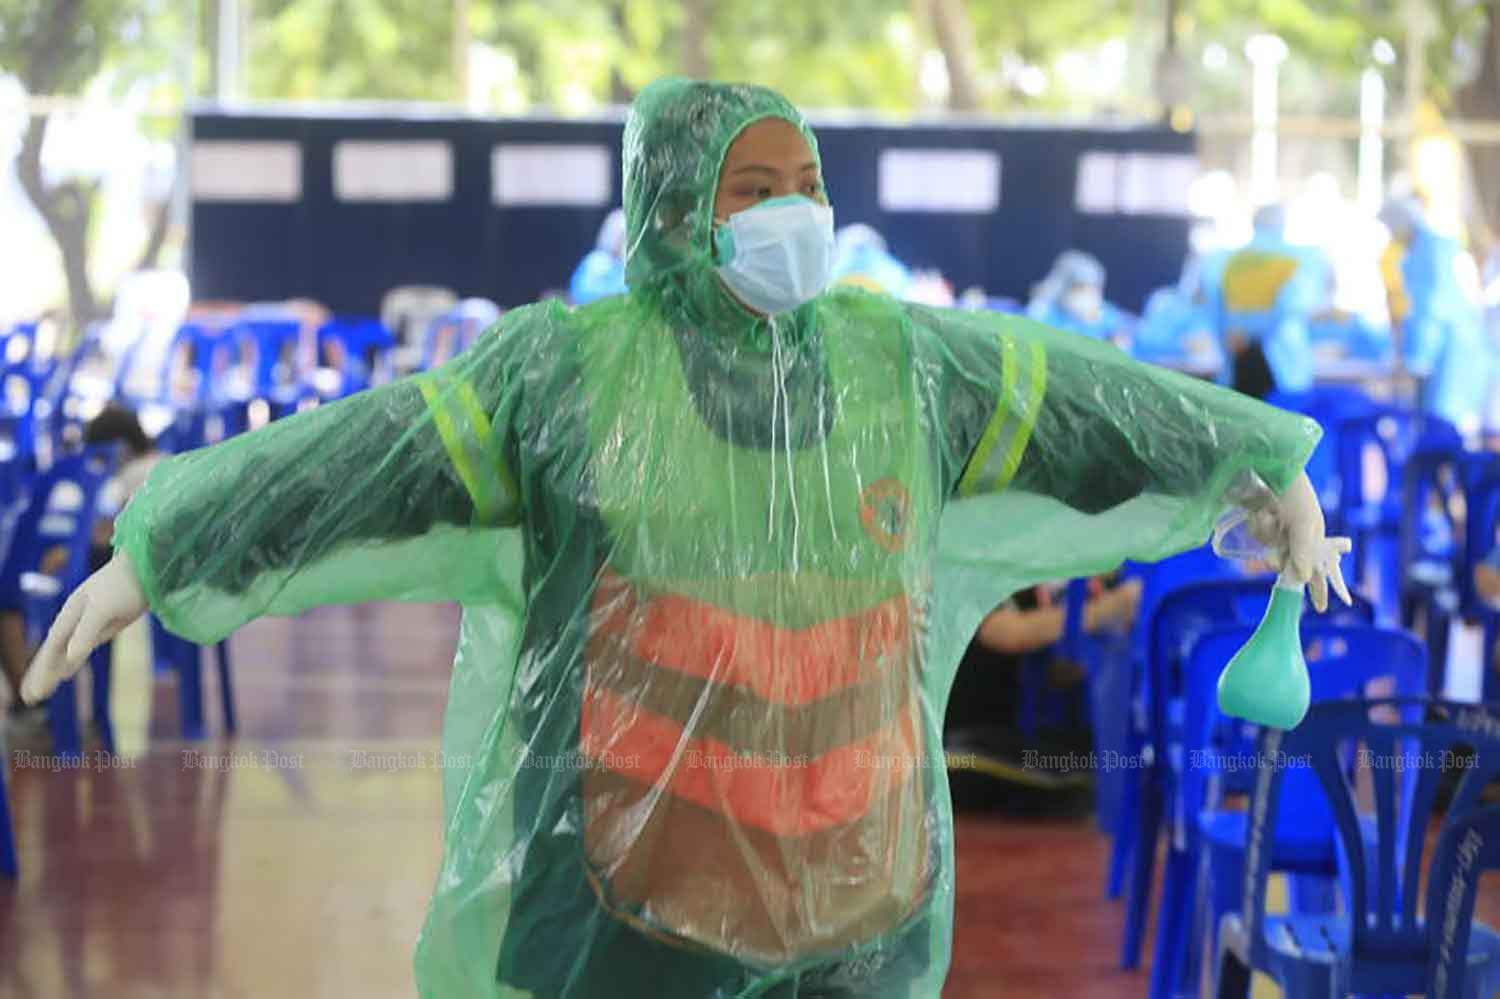 A City Hall worker shows off her improvised protective gear made from a plastic raincoat, as officials from Chatuchak district office assist people arriving for  Covid-19 testing at the sports ground at Chadrakasem Rajabhat University in the capital on Monday. (Photo: Pornprom Satrabhaya)